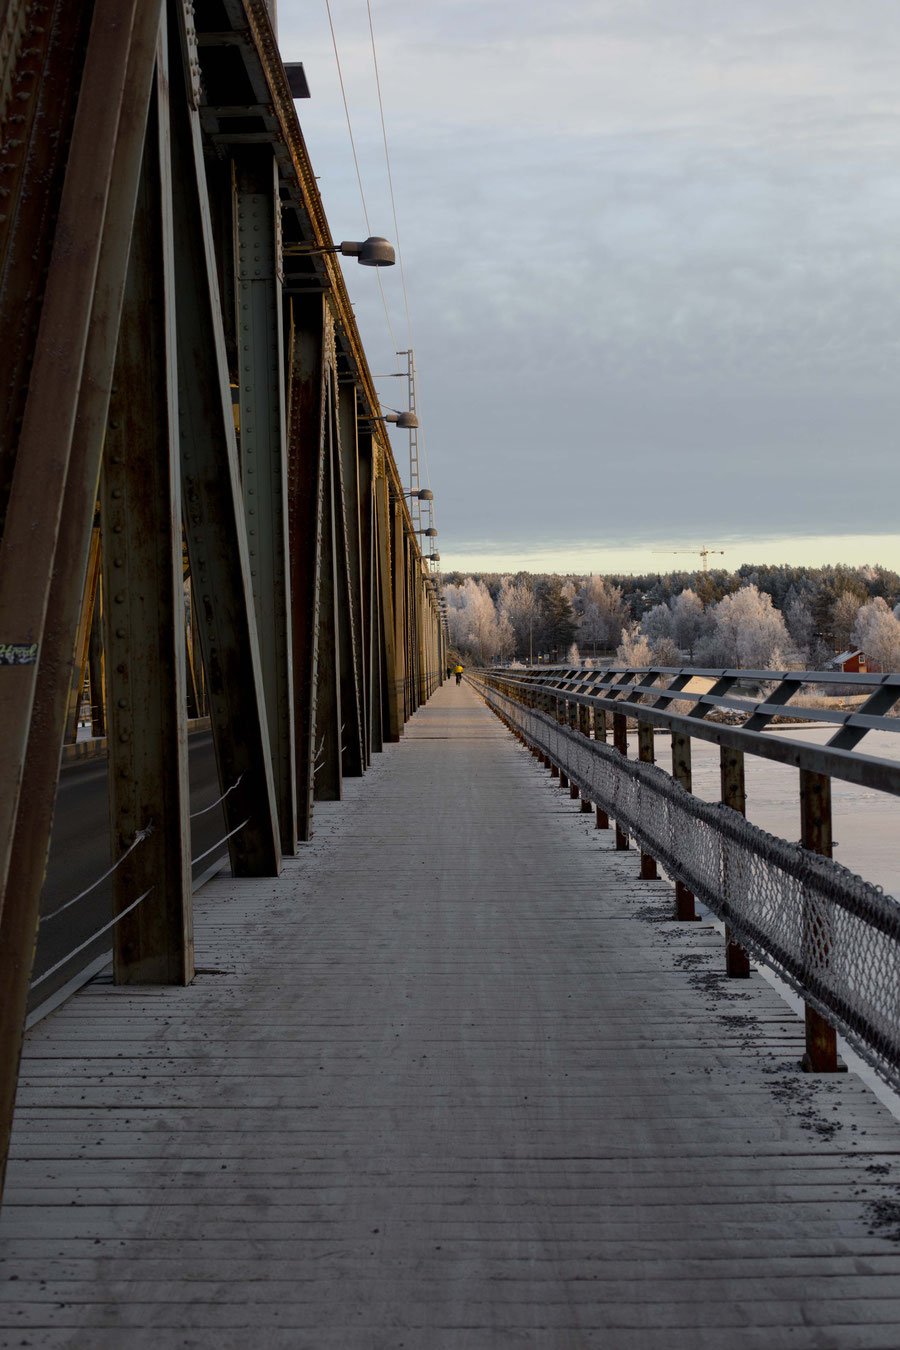 Bridge crossing the Kemijoki, Roveniemi, Finland